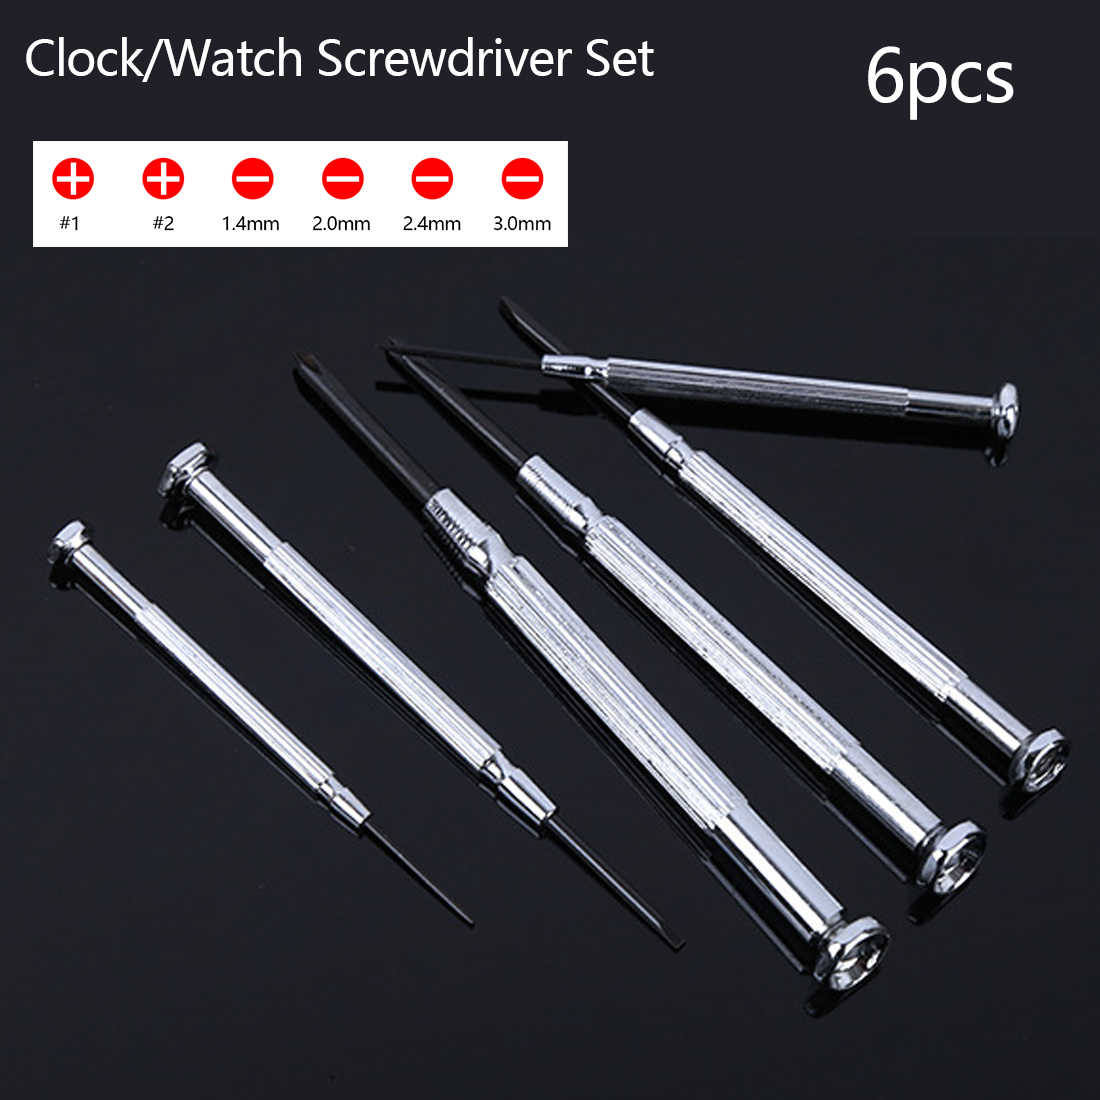 Multifunction Mini Small Screwdriver Set 6pcs Precision Screw driver  with Slotted Phillips Bits for Watch Glasses Repair Tools